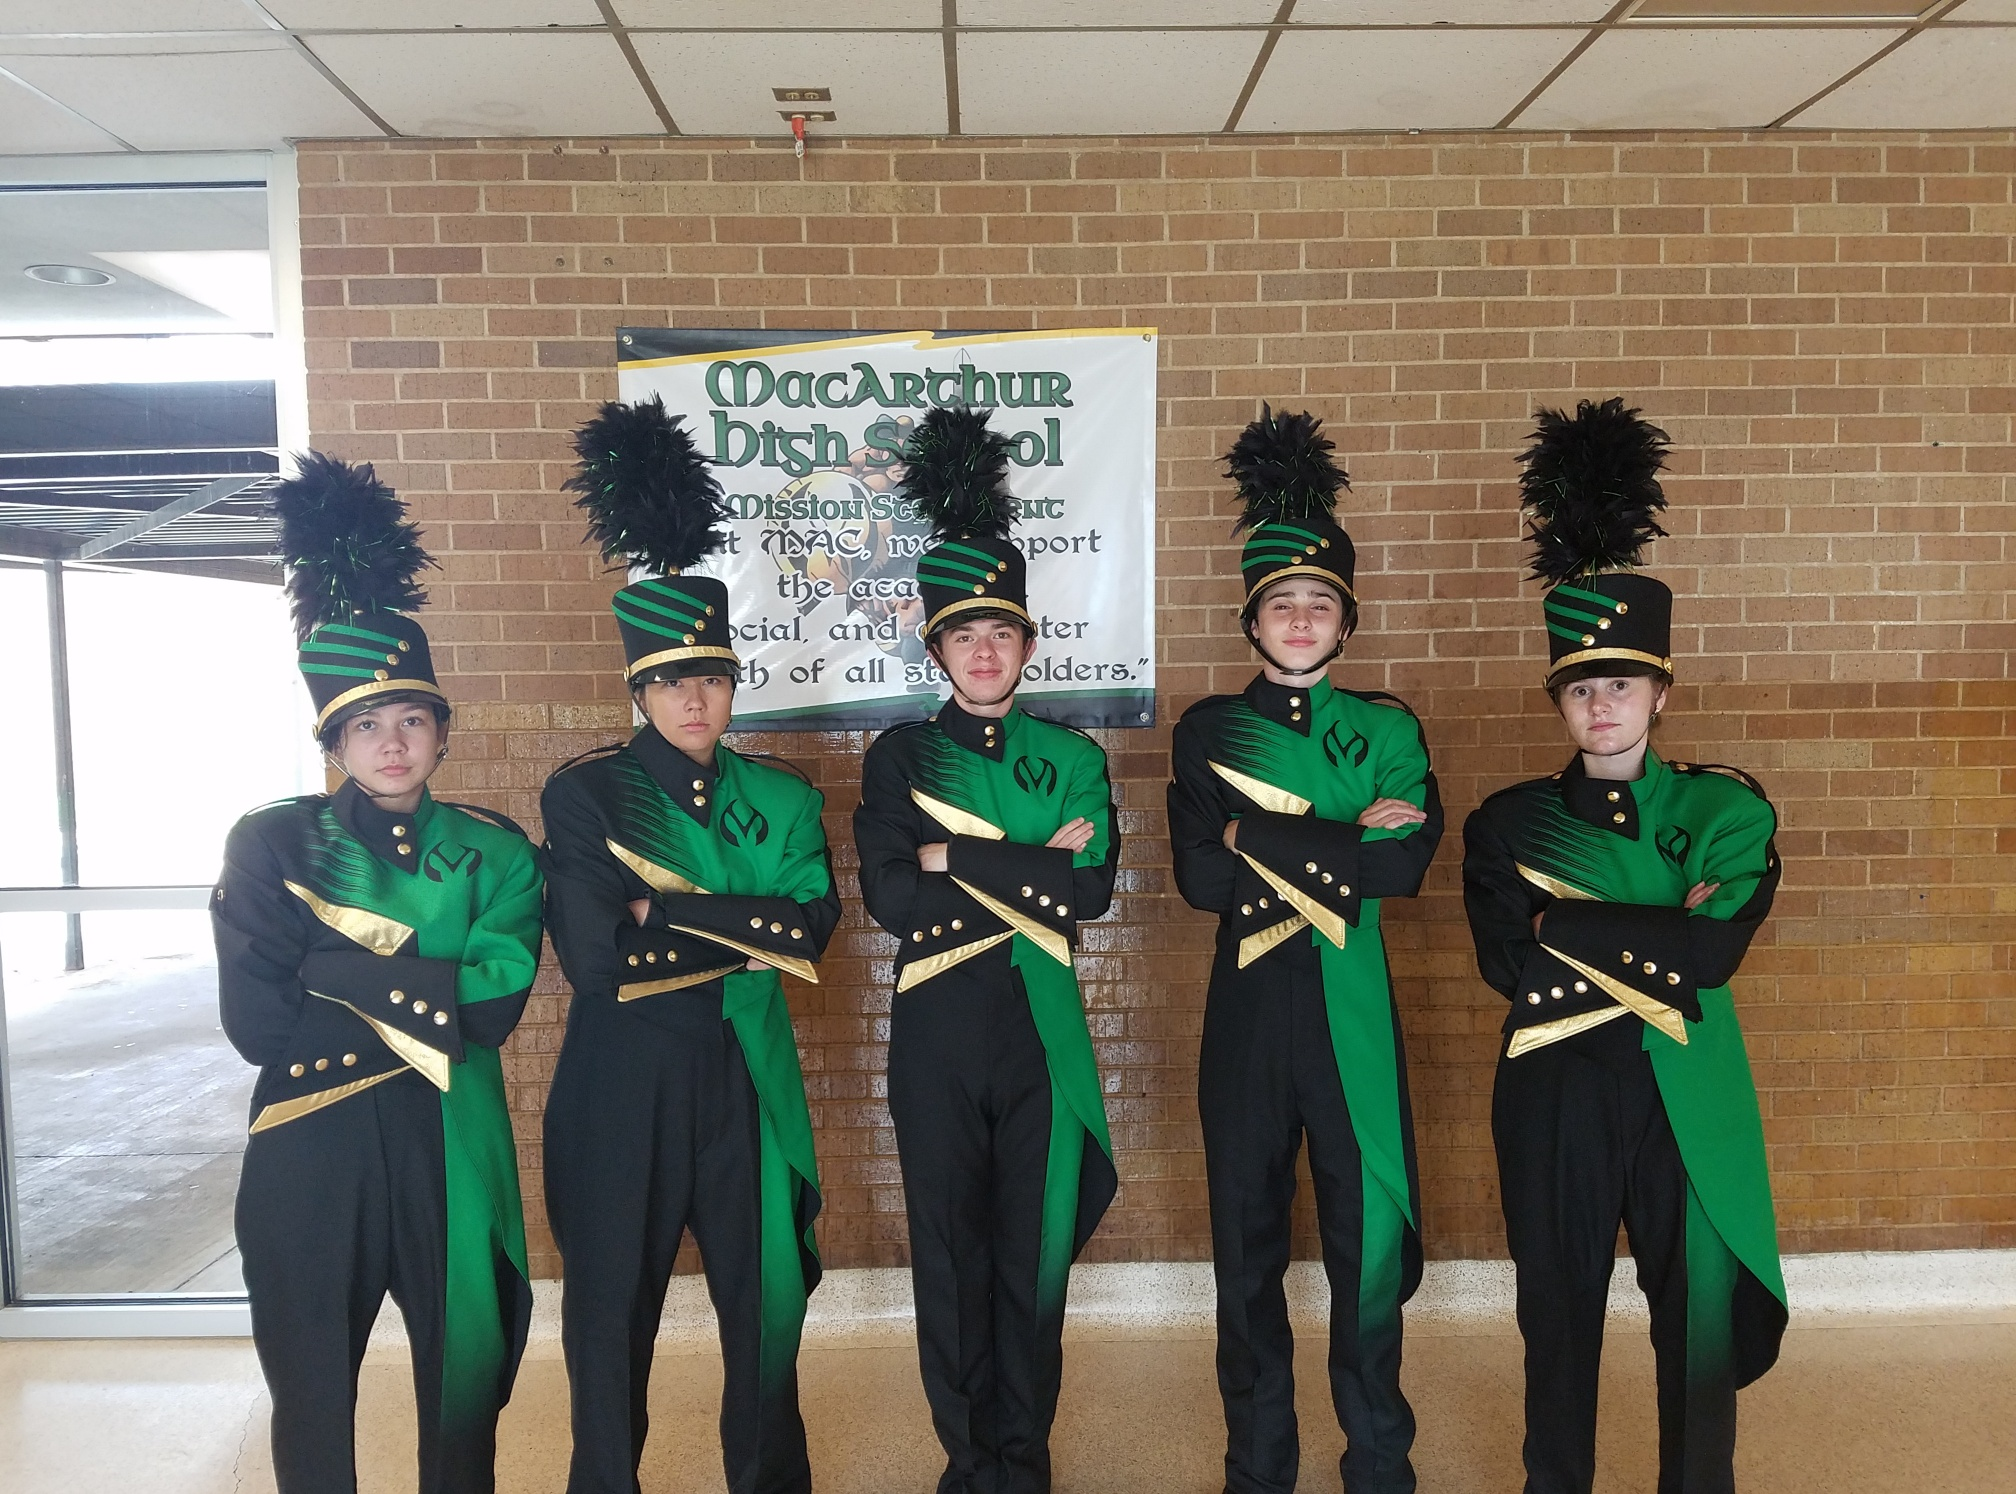 new band uniforms